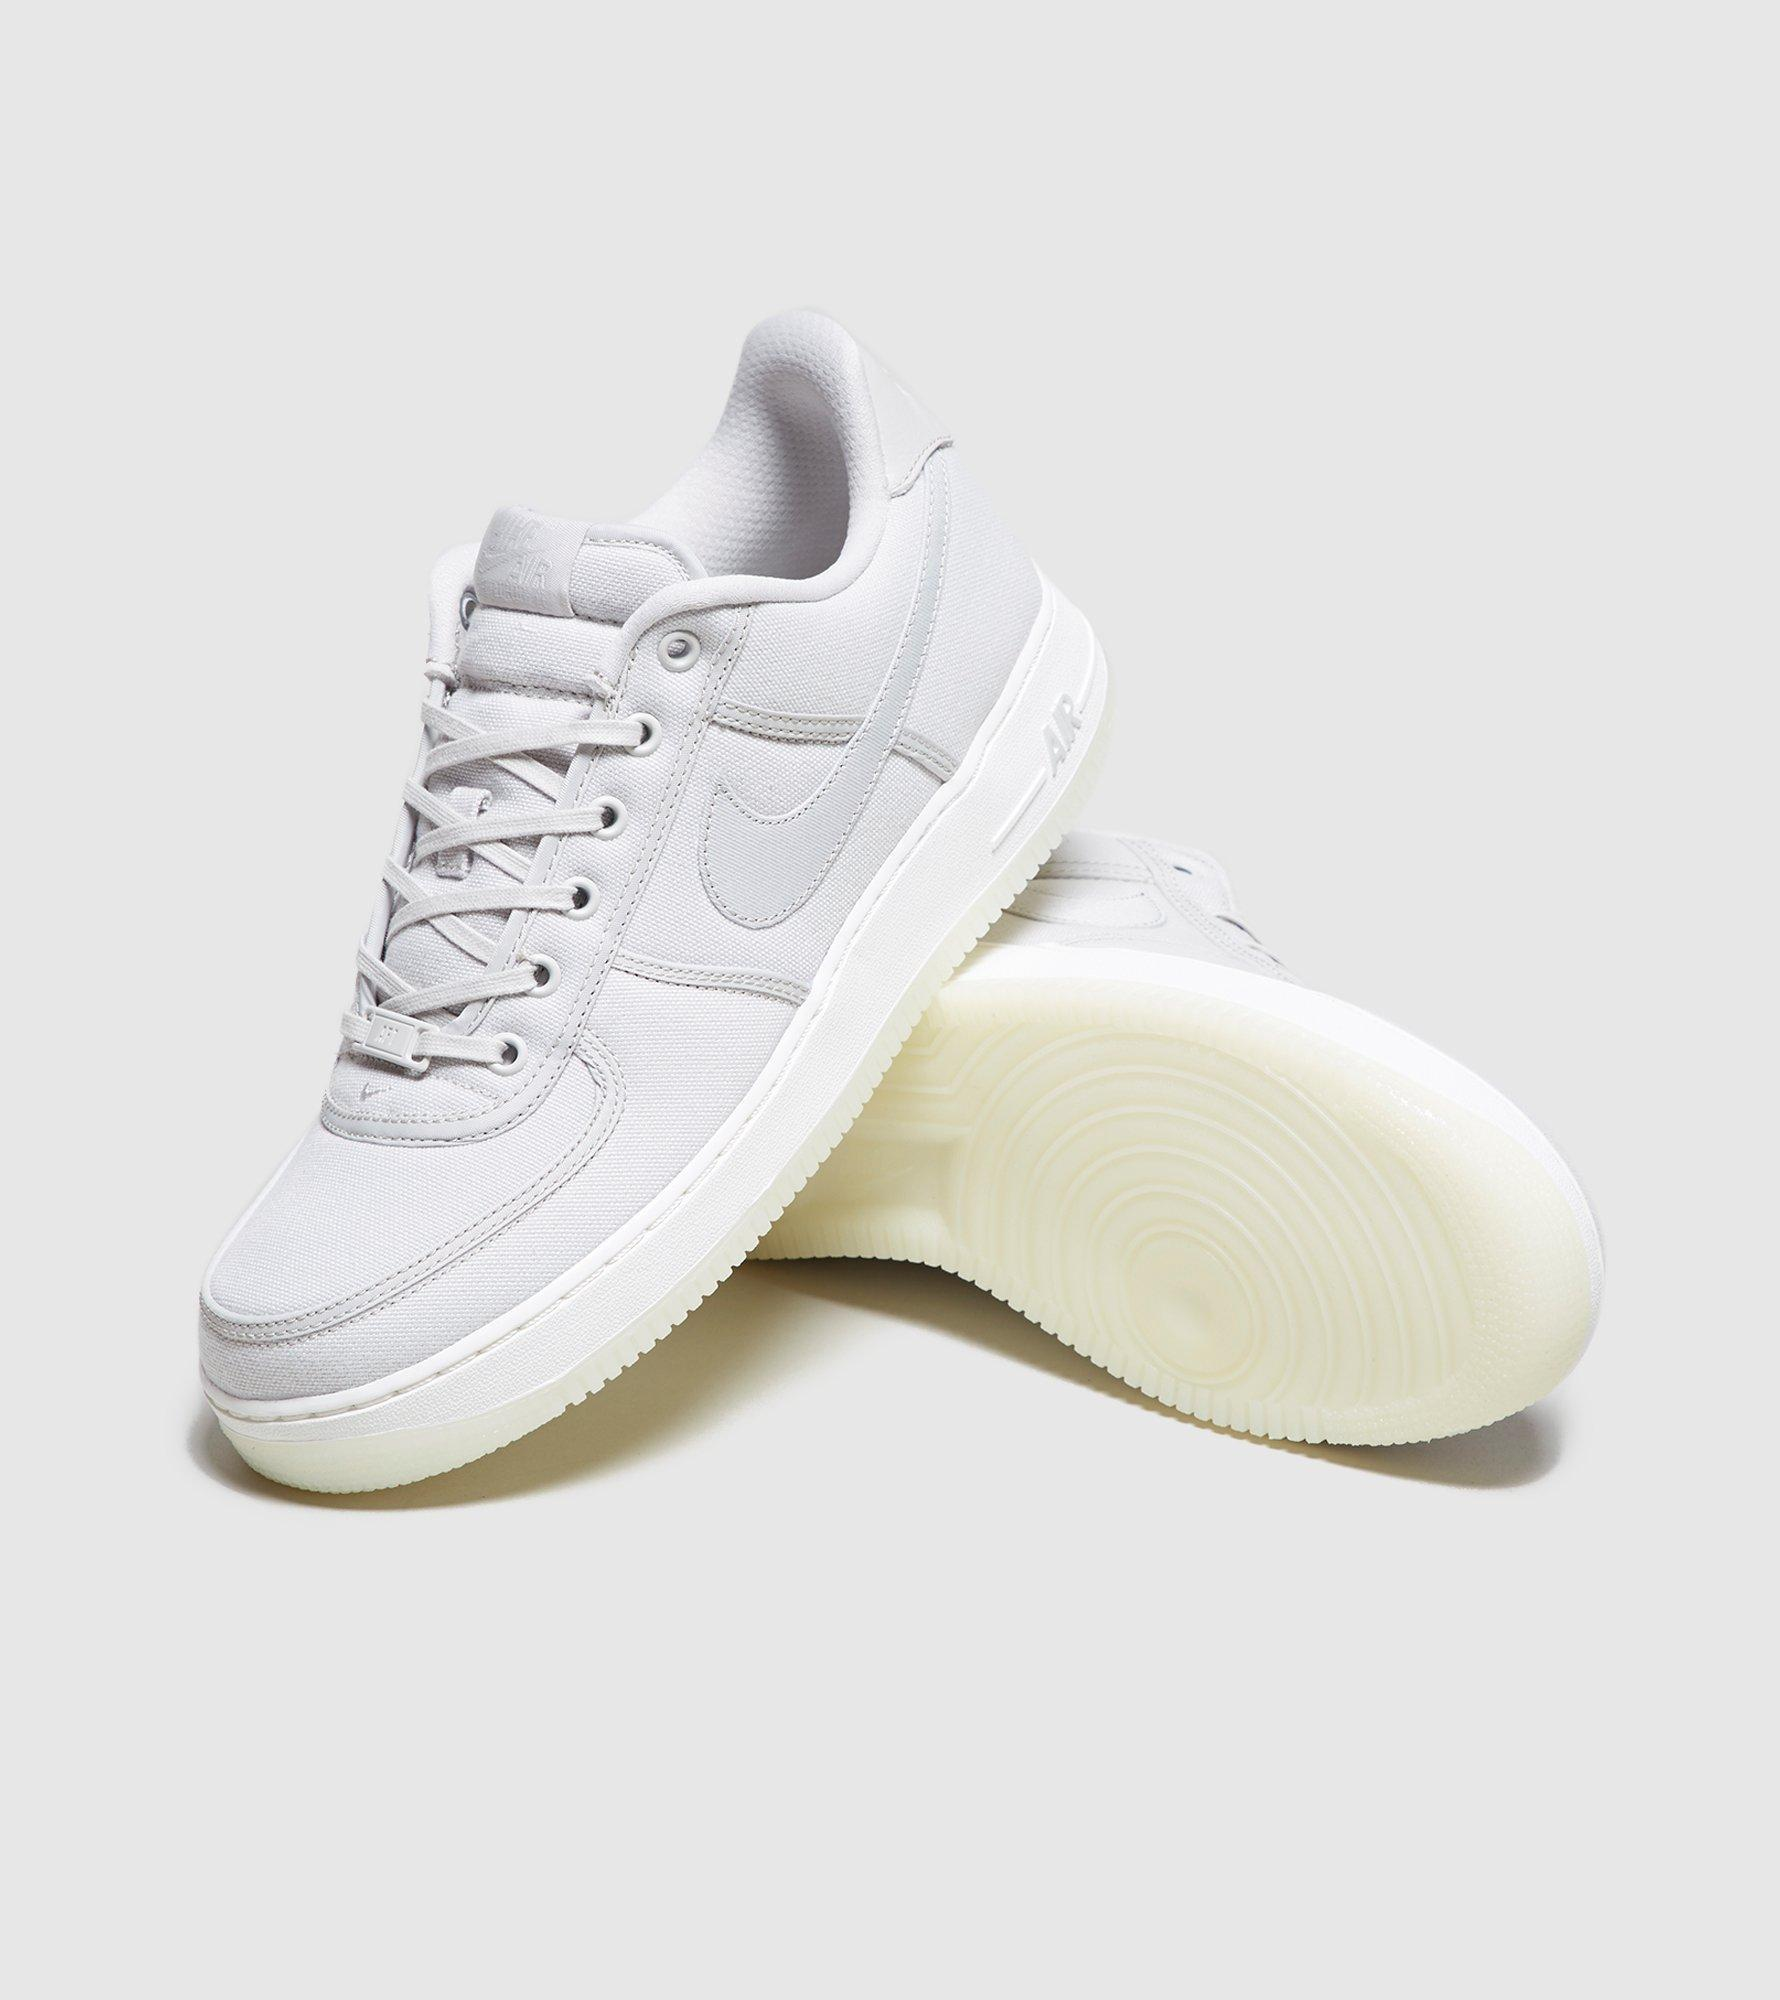 242fc4cc383426 Lyst - Nike Air Force 1 Low Retro Qs Canvas in Gray for Men